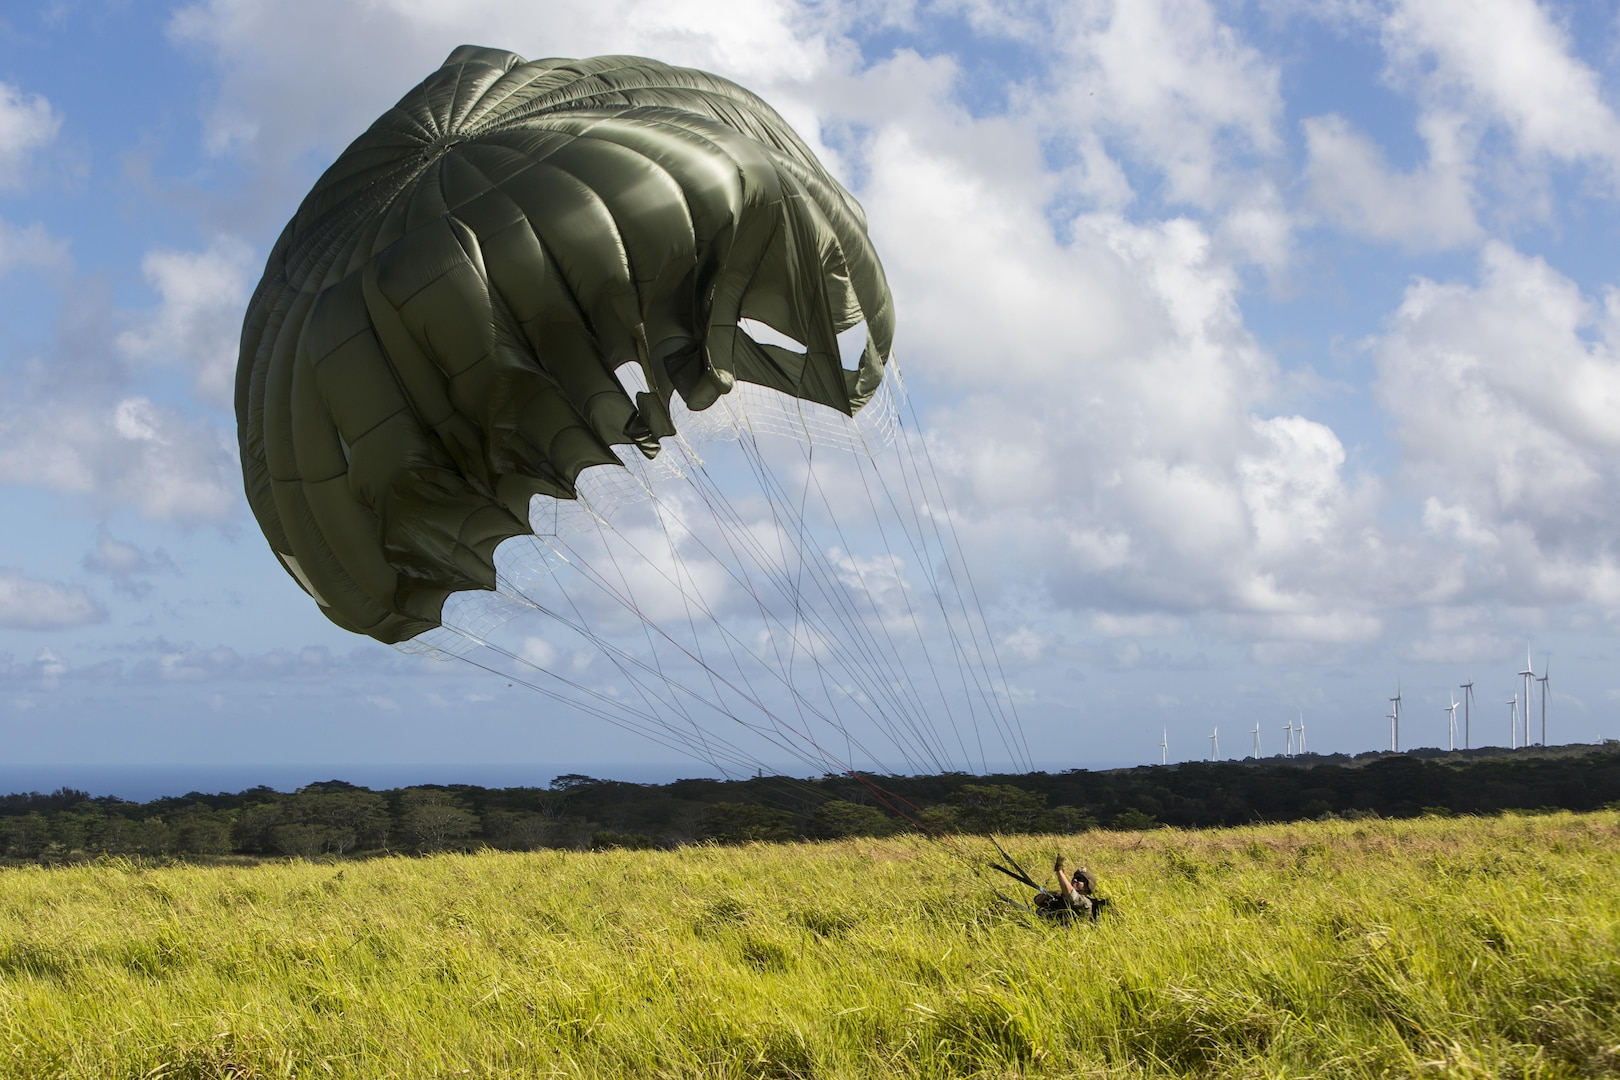 SCHOFIELD BARRACKS – A Marine with 4th Force Reconnaissance Company handles his parachute after successfully conducting a static line airborne jump at Schofield Barracks, July 14, 2017. The Marines trained with U.S. Army Special Forces to maintain proficiency in completing static line and high altitude free fall airborne jumps. (U.S. Marine Corps photo by Lance Cpl. Isabelo Tabanguil)